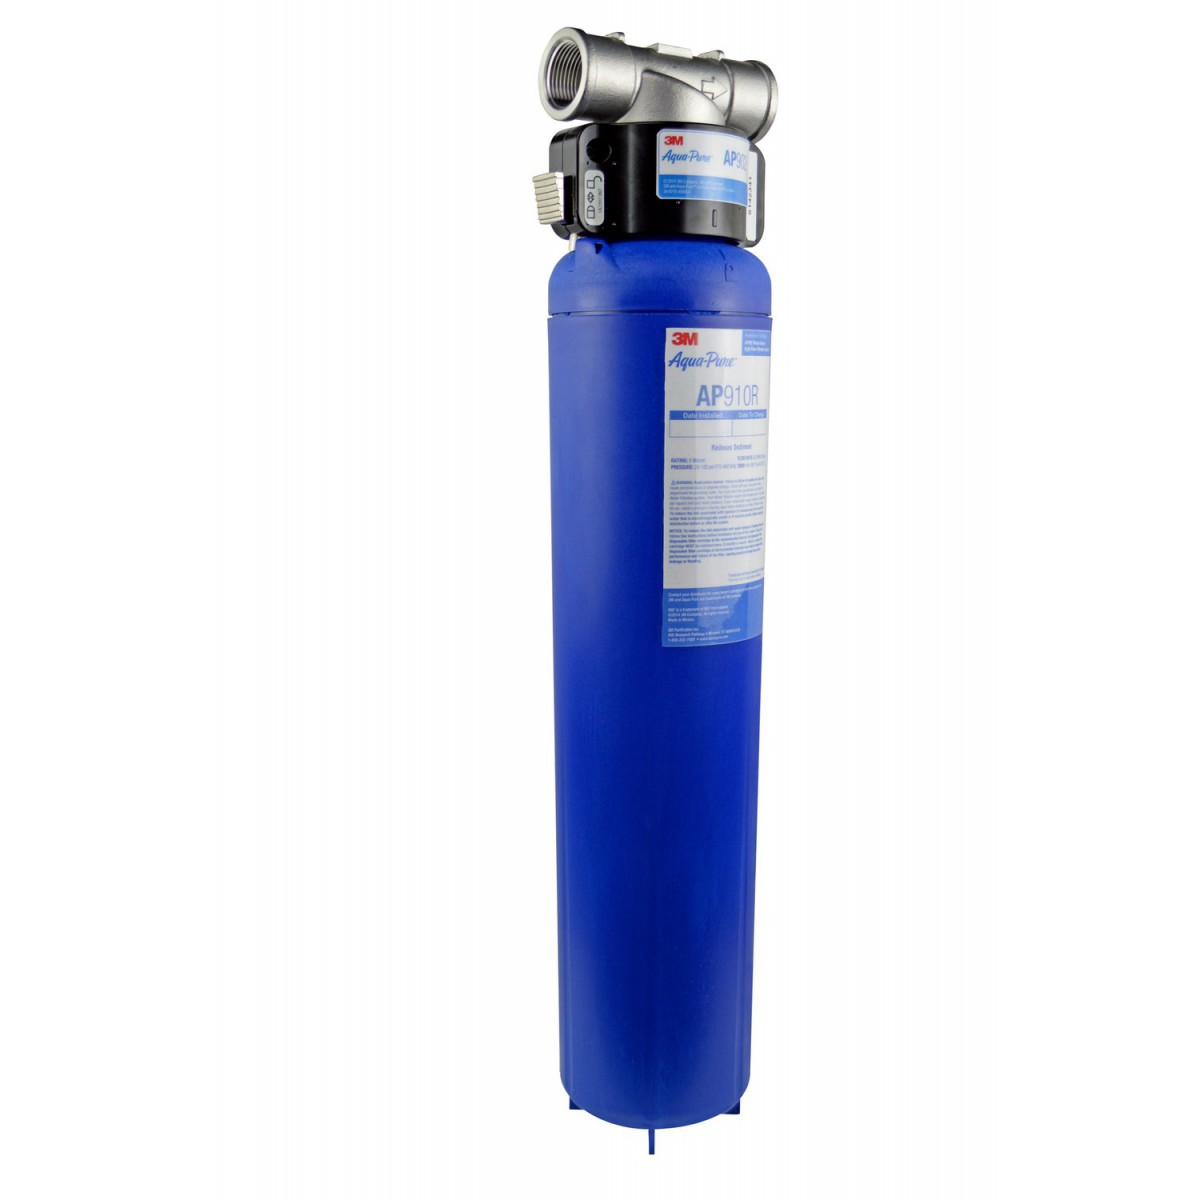 Home Water Filter System 3m Aqua Pure Ap902 Water Filtration System